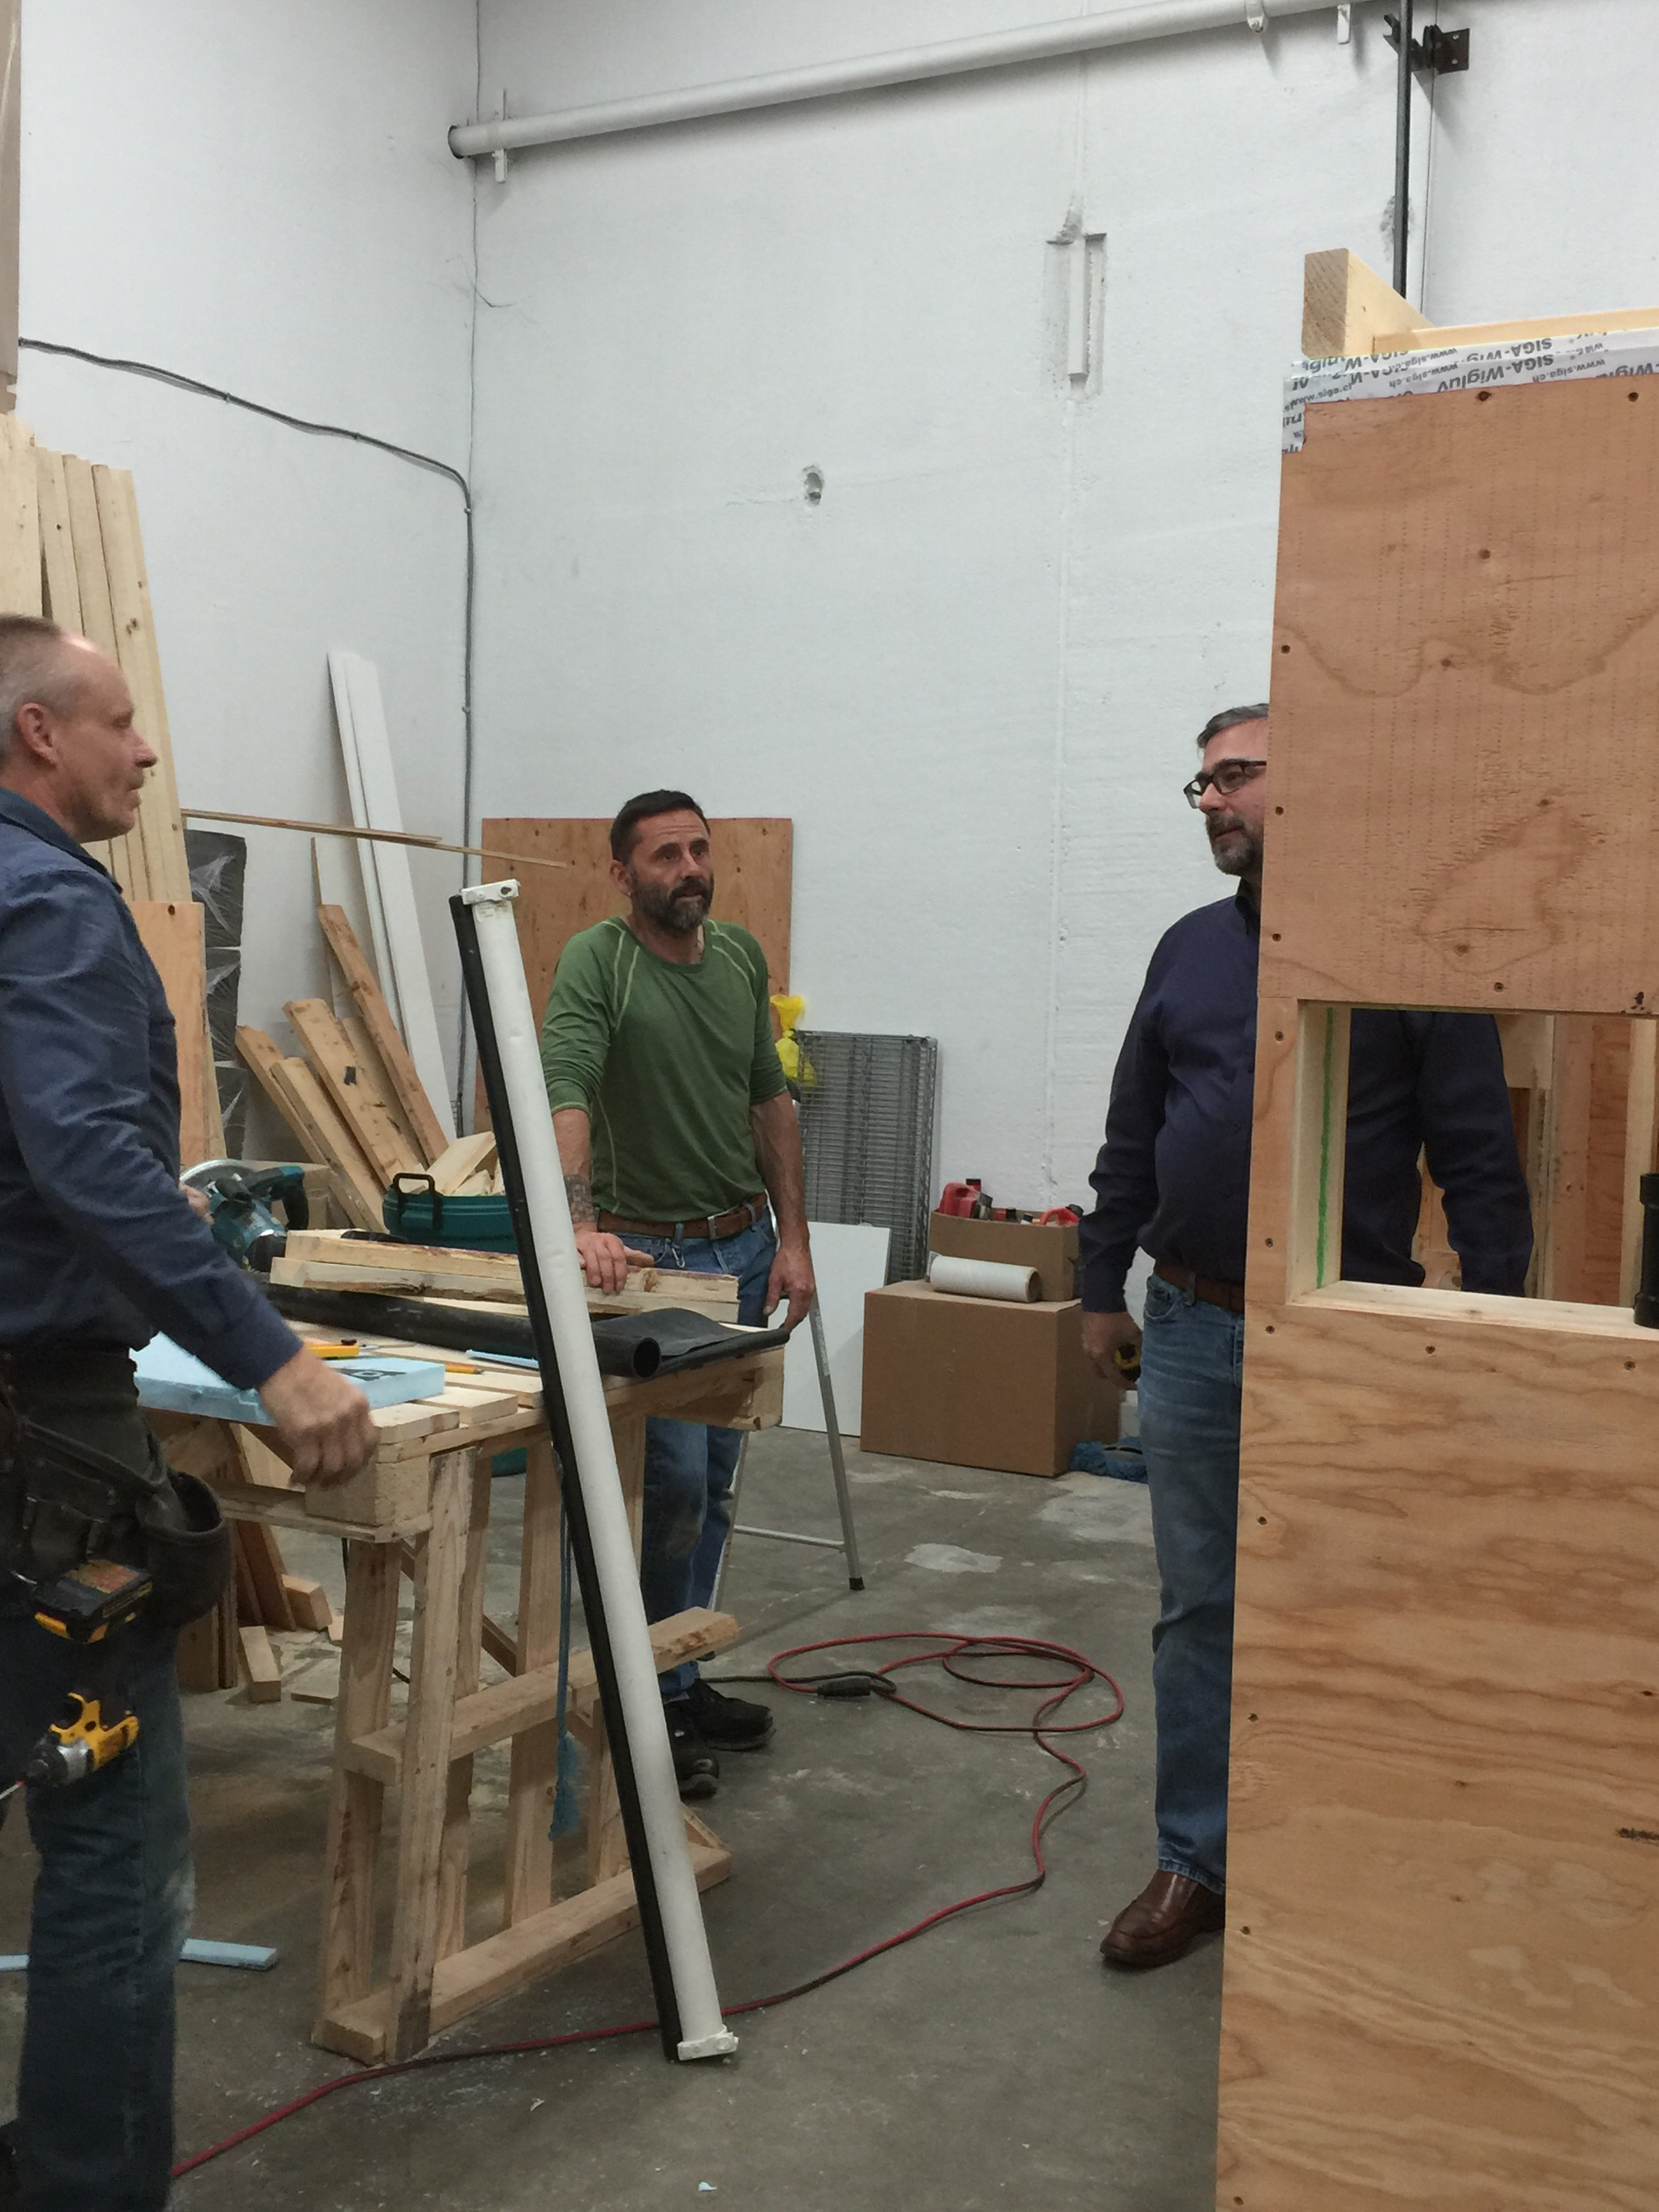 Albert Rooks, Geoffrey Kirkpatrick and Albert Rooks working on the modules in the Small Planet Supply Warehouse